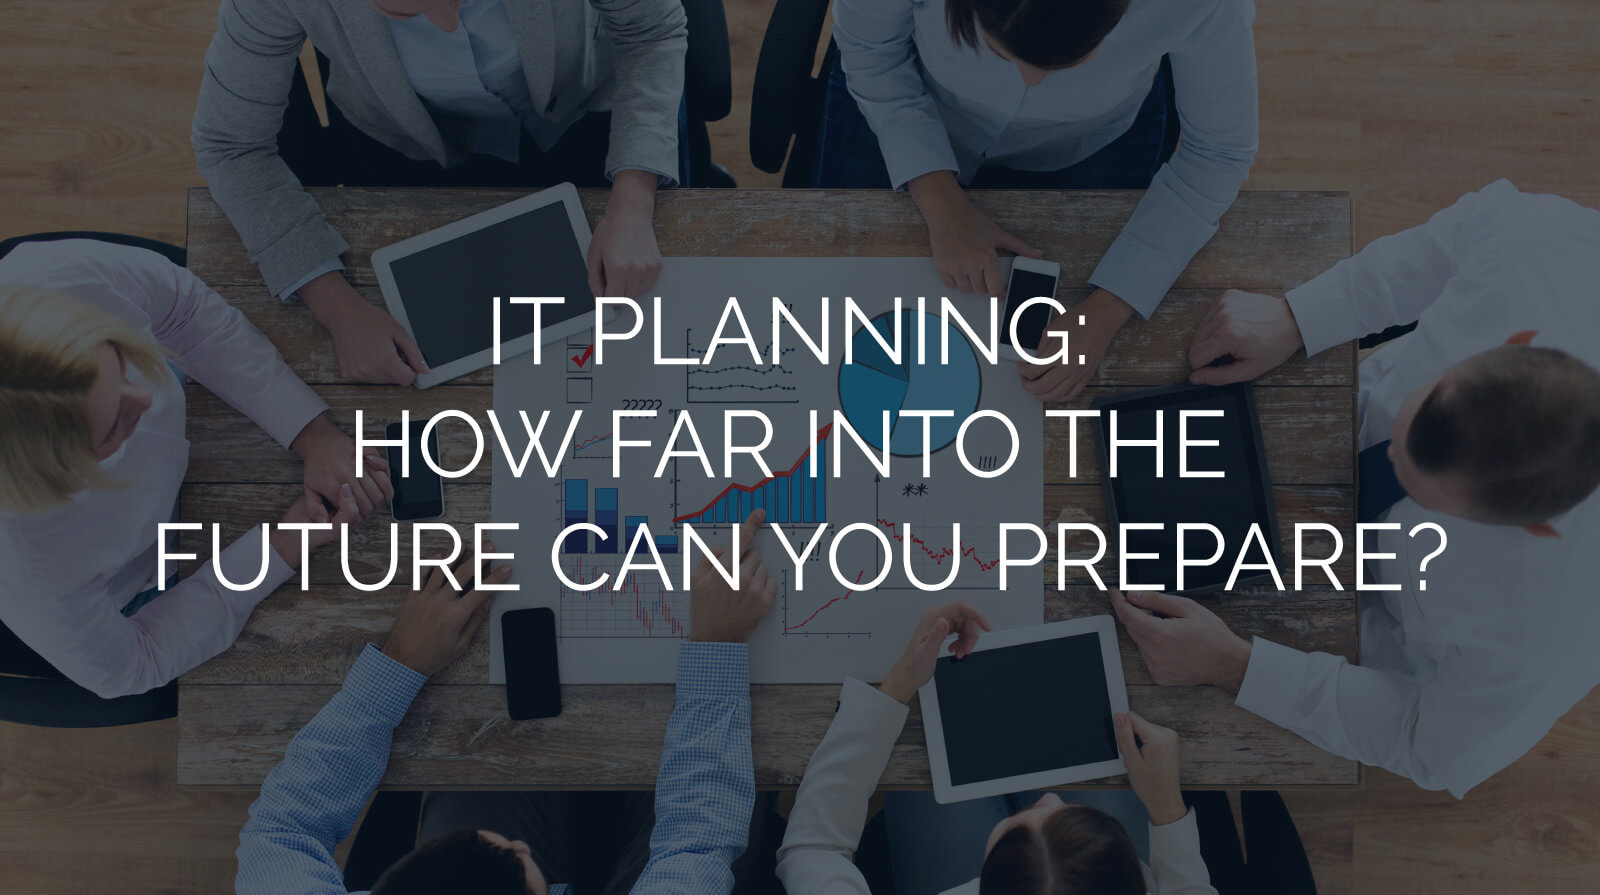 IT Planning: How Far into the Future Can You Prepare?